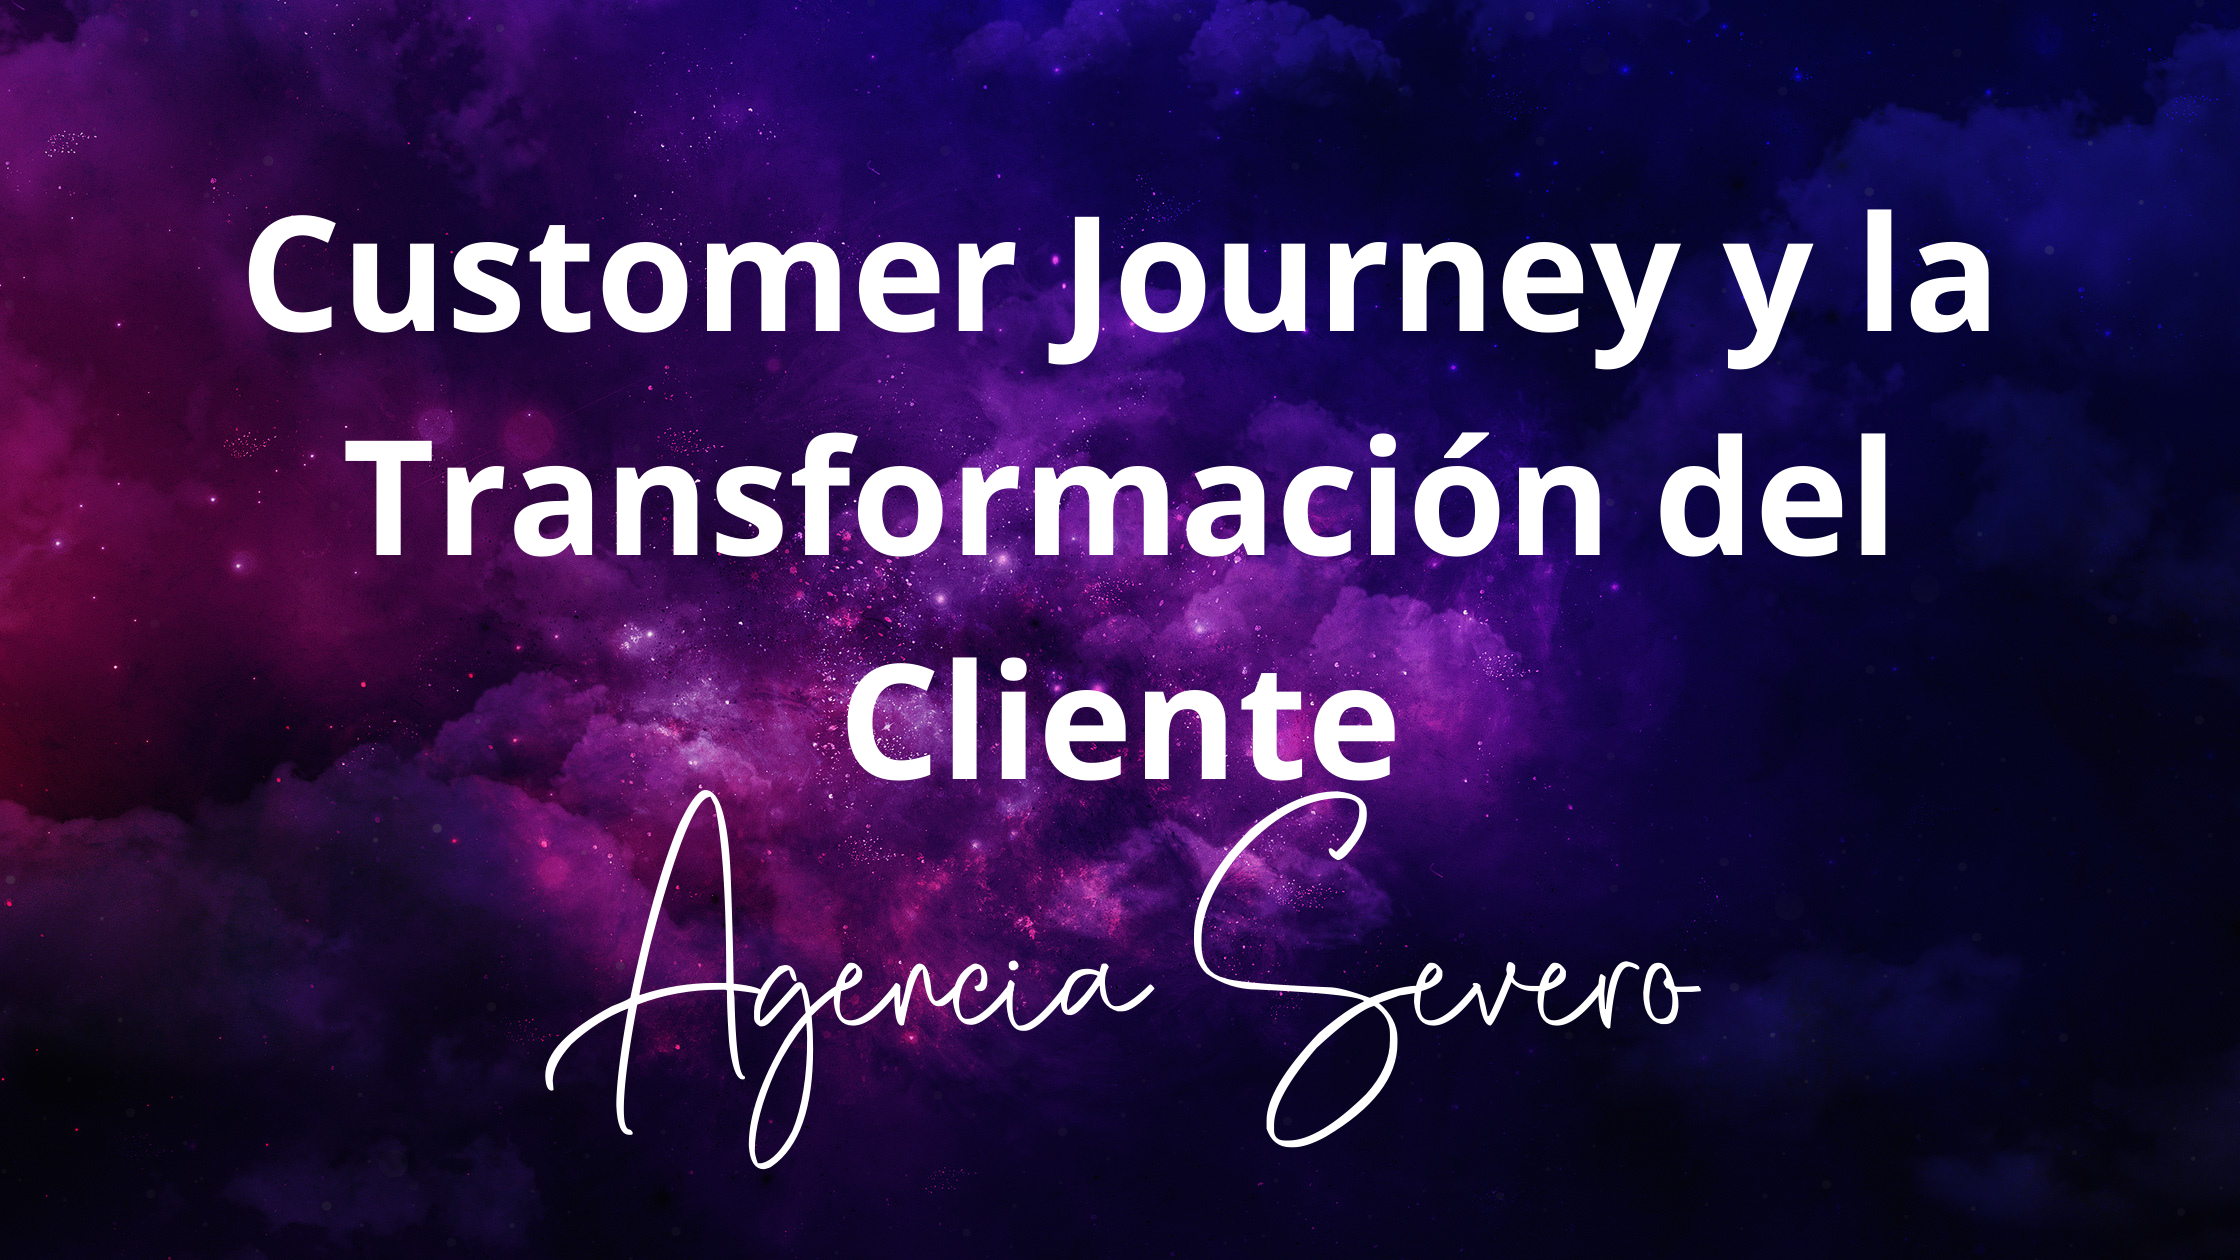 Customer Journey y la transformación del cliente